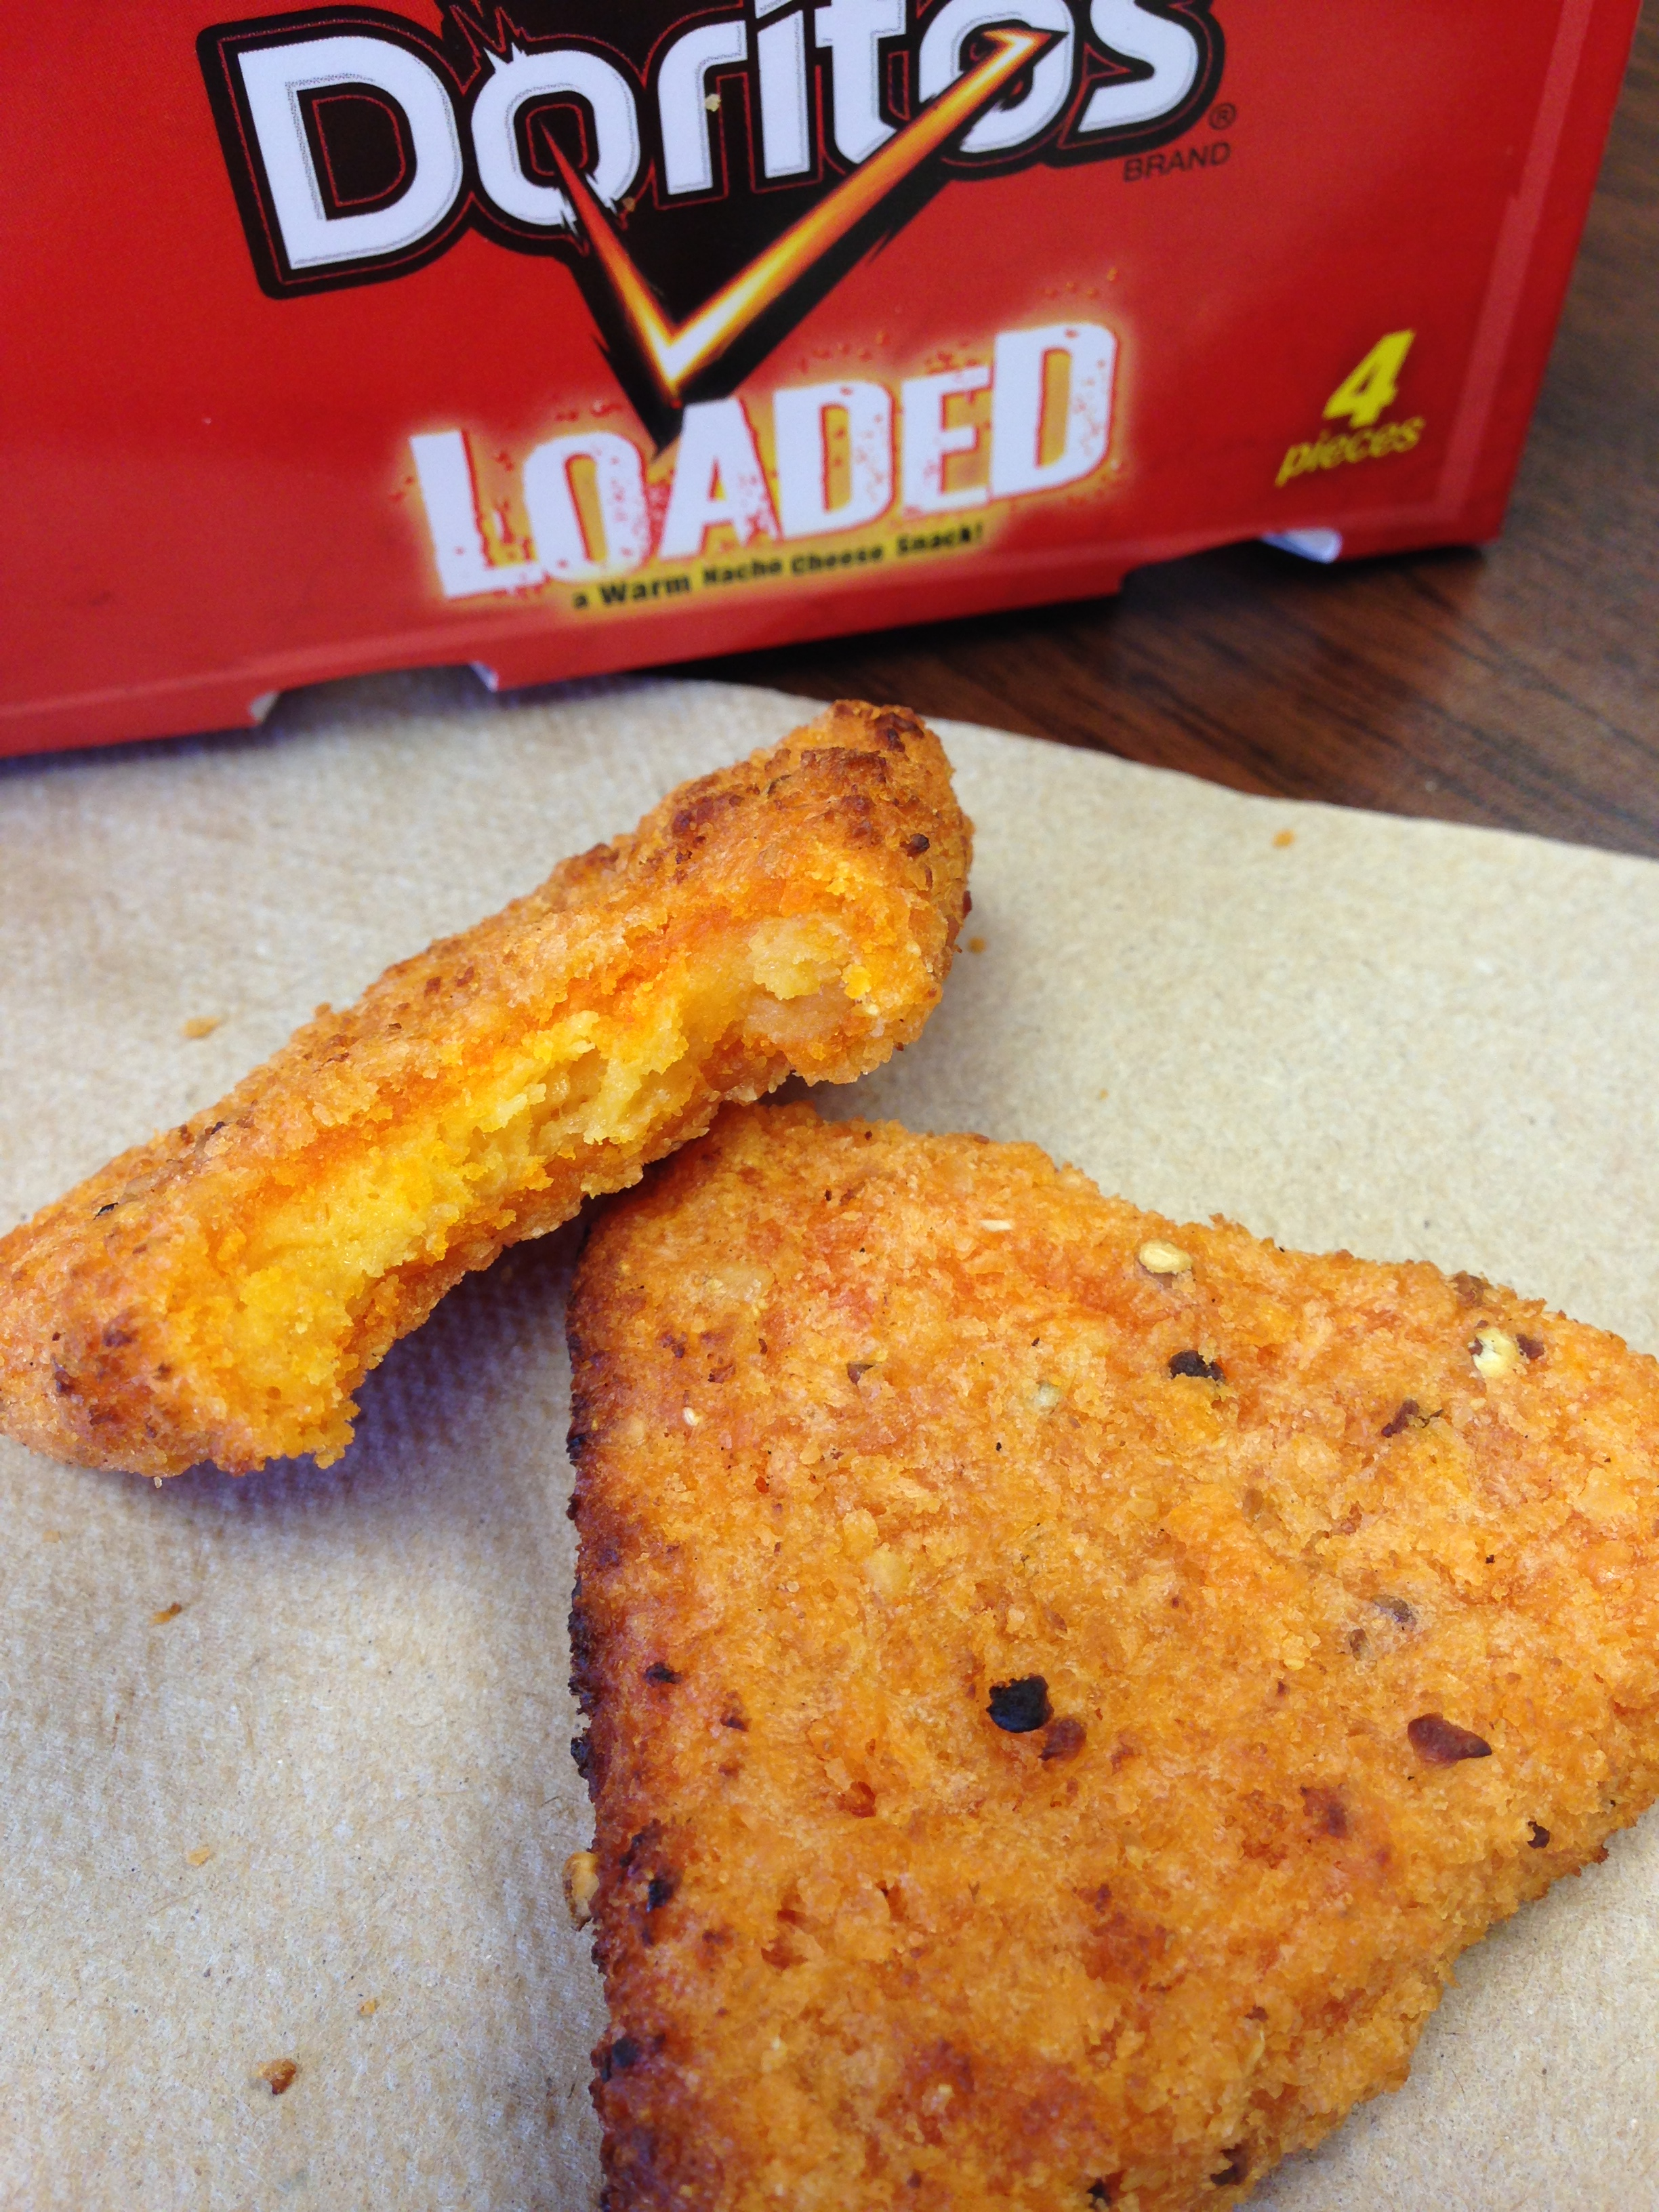 The Doritos Loaded Taste Test: Where Cheese Sticks And Doritos Go To Die